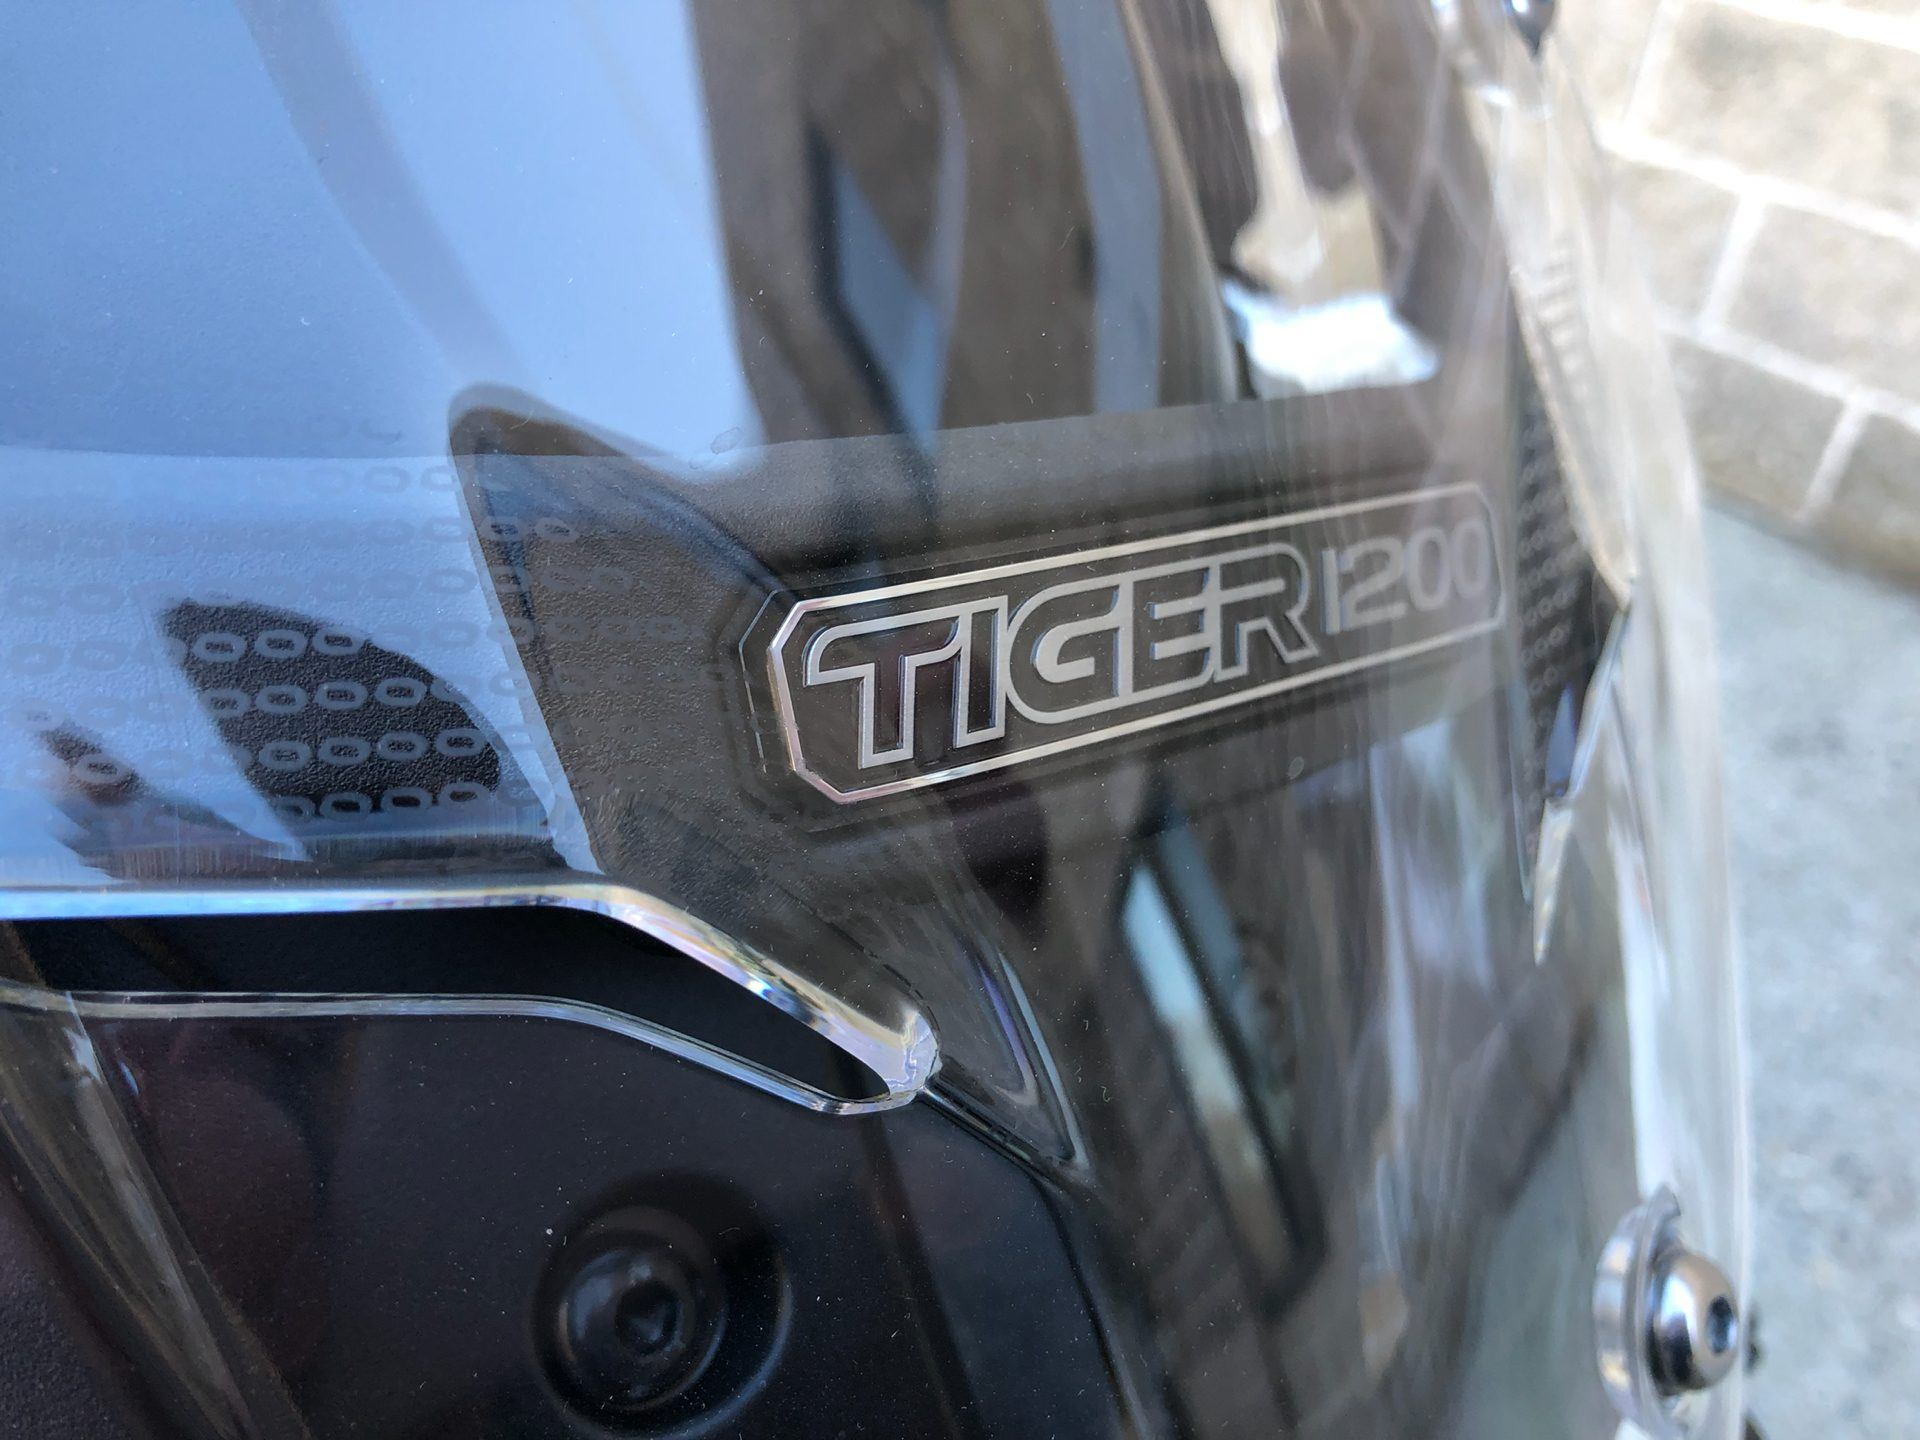 2019 Triumph Tiger 1200 XRt in Enfield, Connecticut - Photo 13